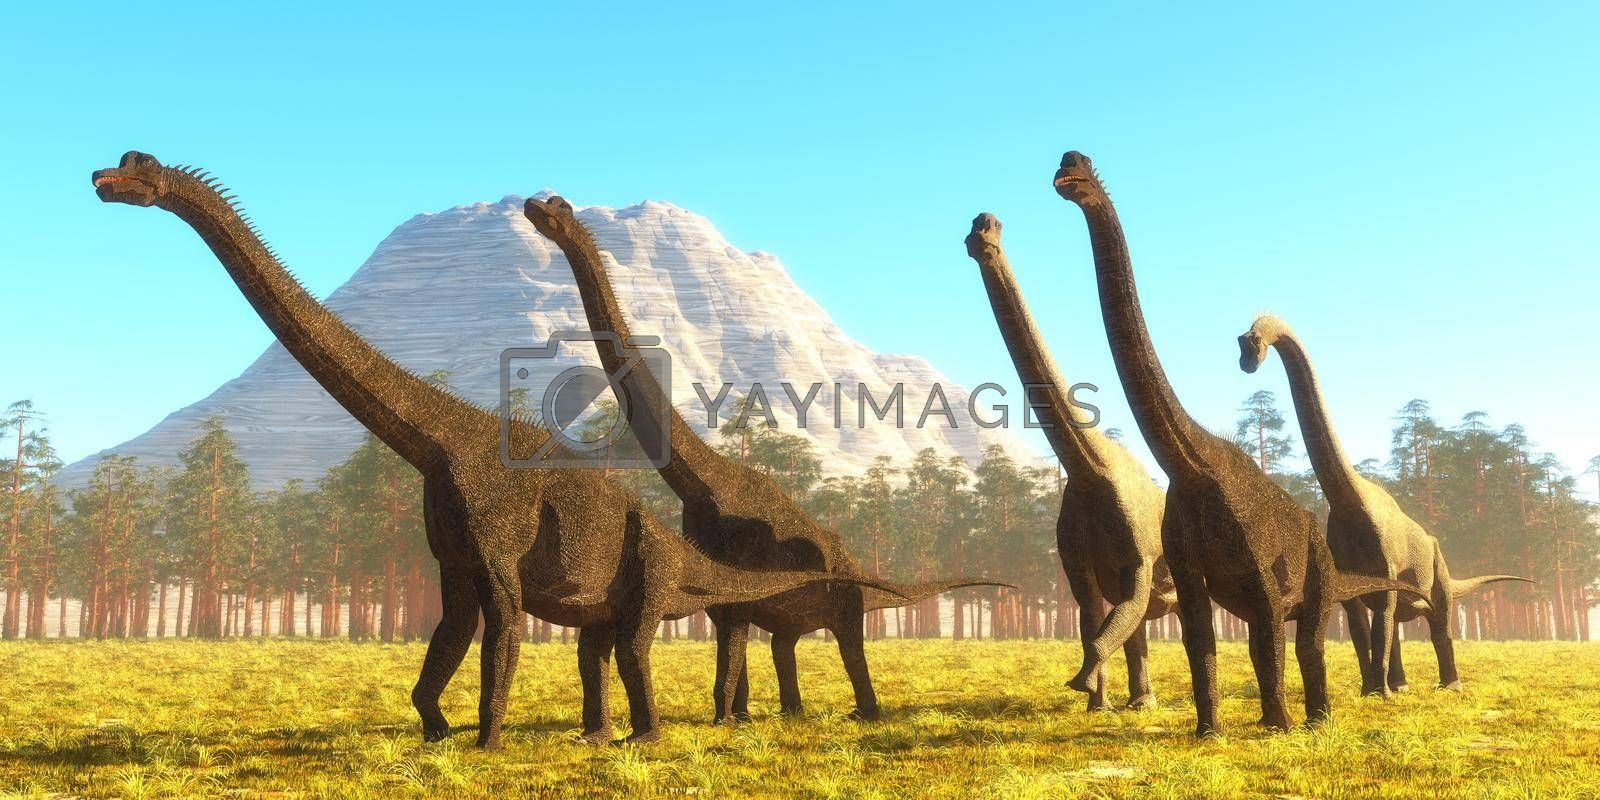 Brachiosaurus was a tall herbivorous sauropod that lived during the Jurassic Period of North America.